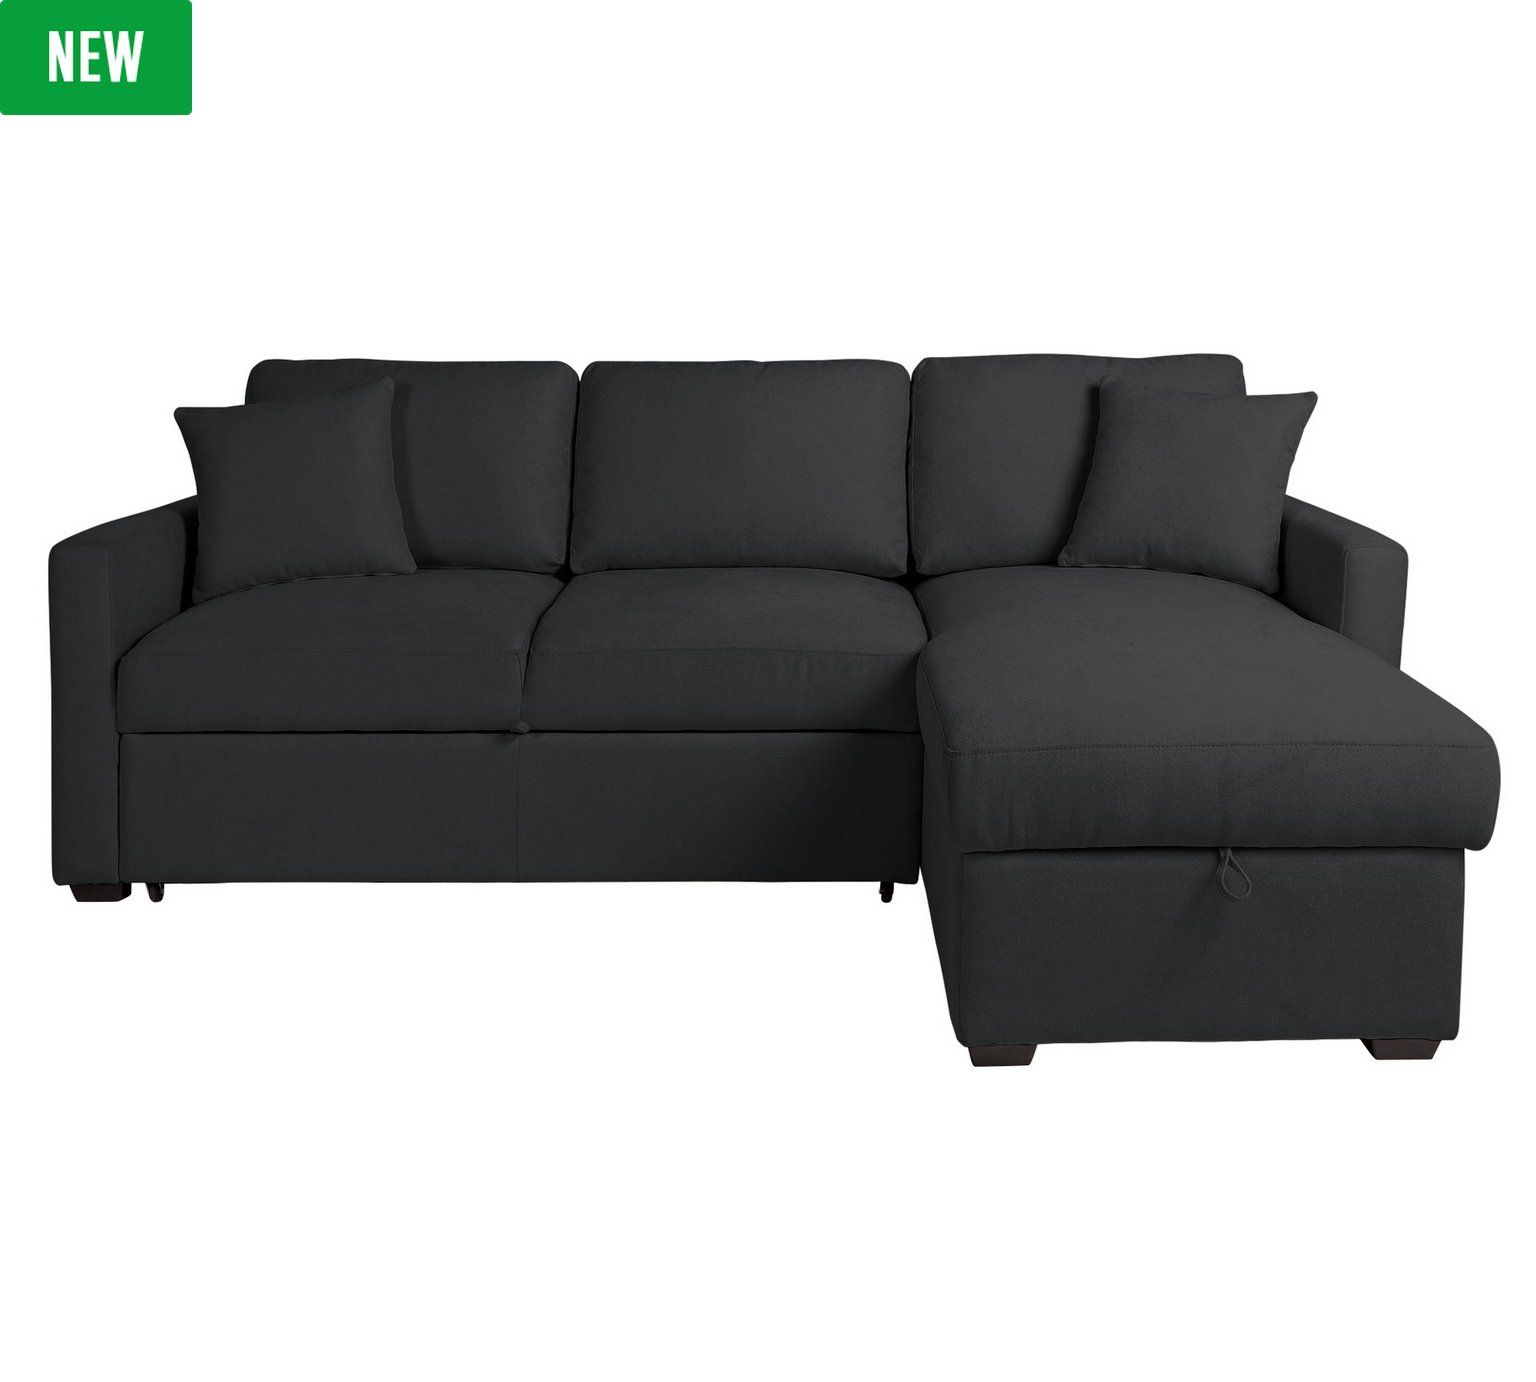 Recamiere ausziehbar  Buy HOME Reagan Fabric Right Corner Chaise Sofa Bed - Charcoal at ...